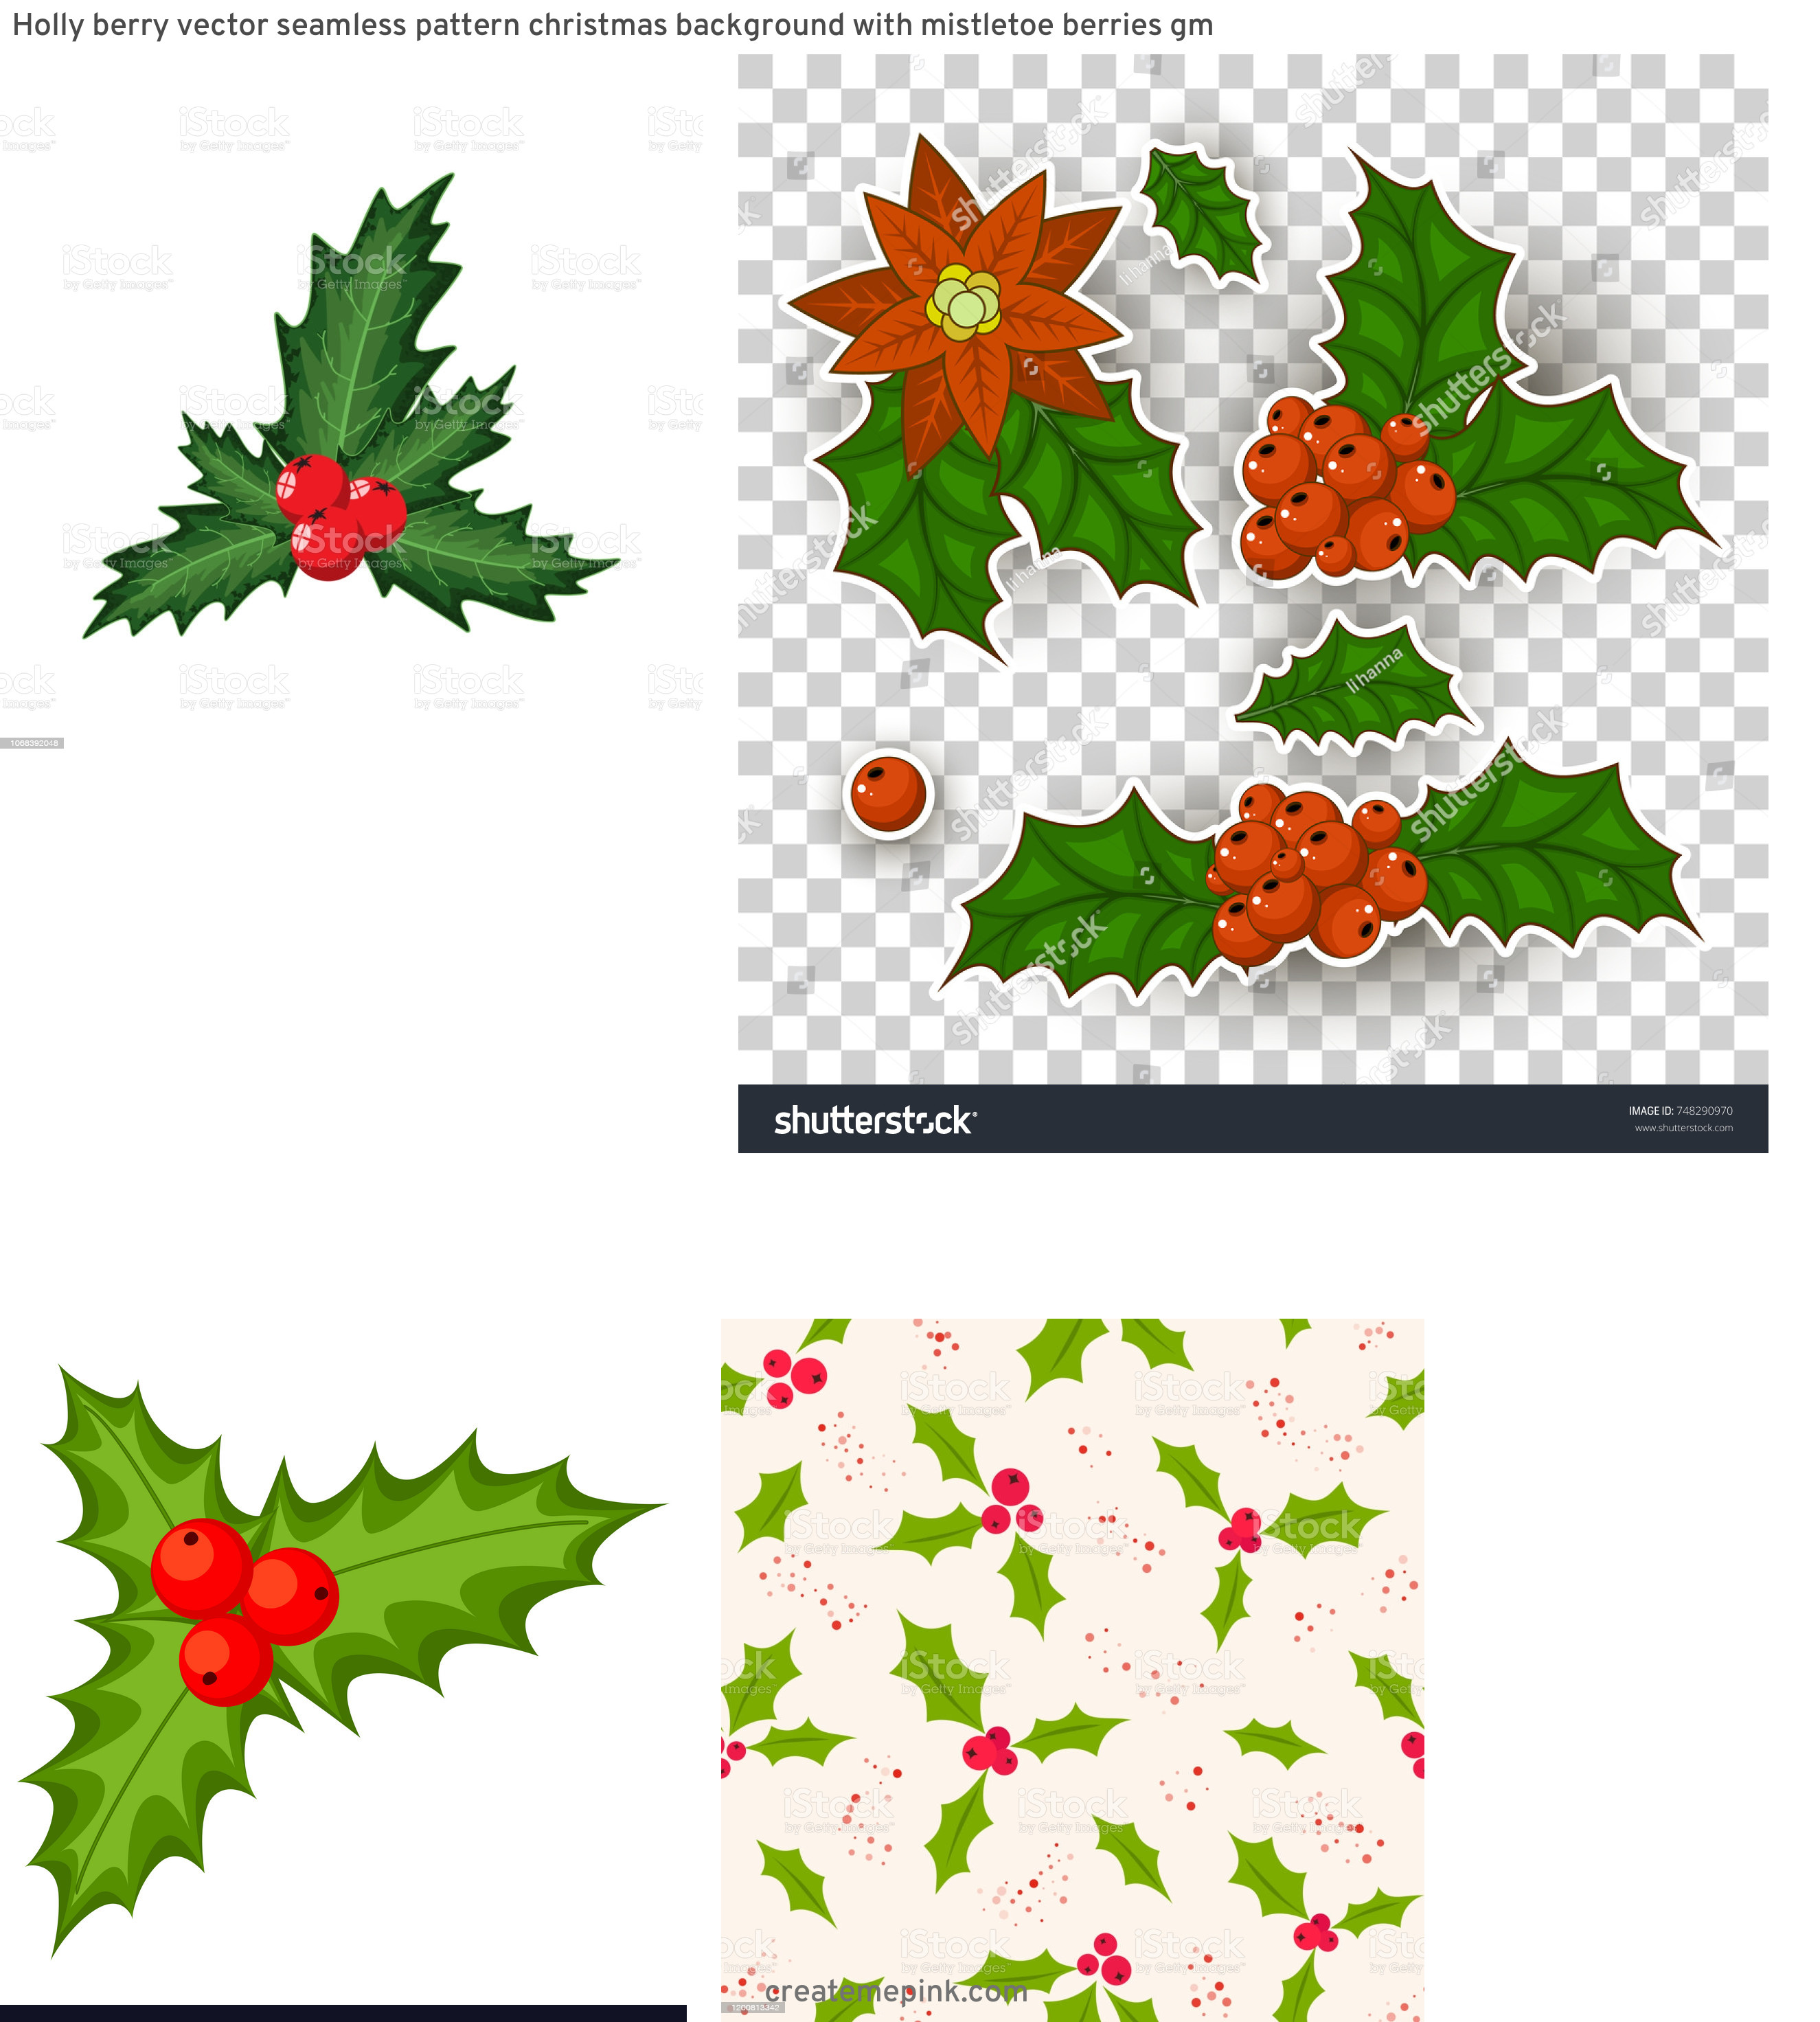 Holly Berry Vector Background: Holly Berry Vector Seamless Pattern Christmas Background With Mistletoe Berries Gm